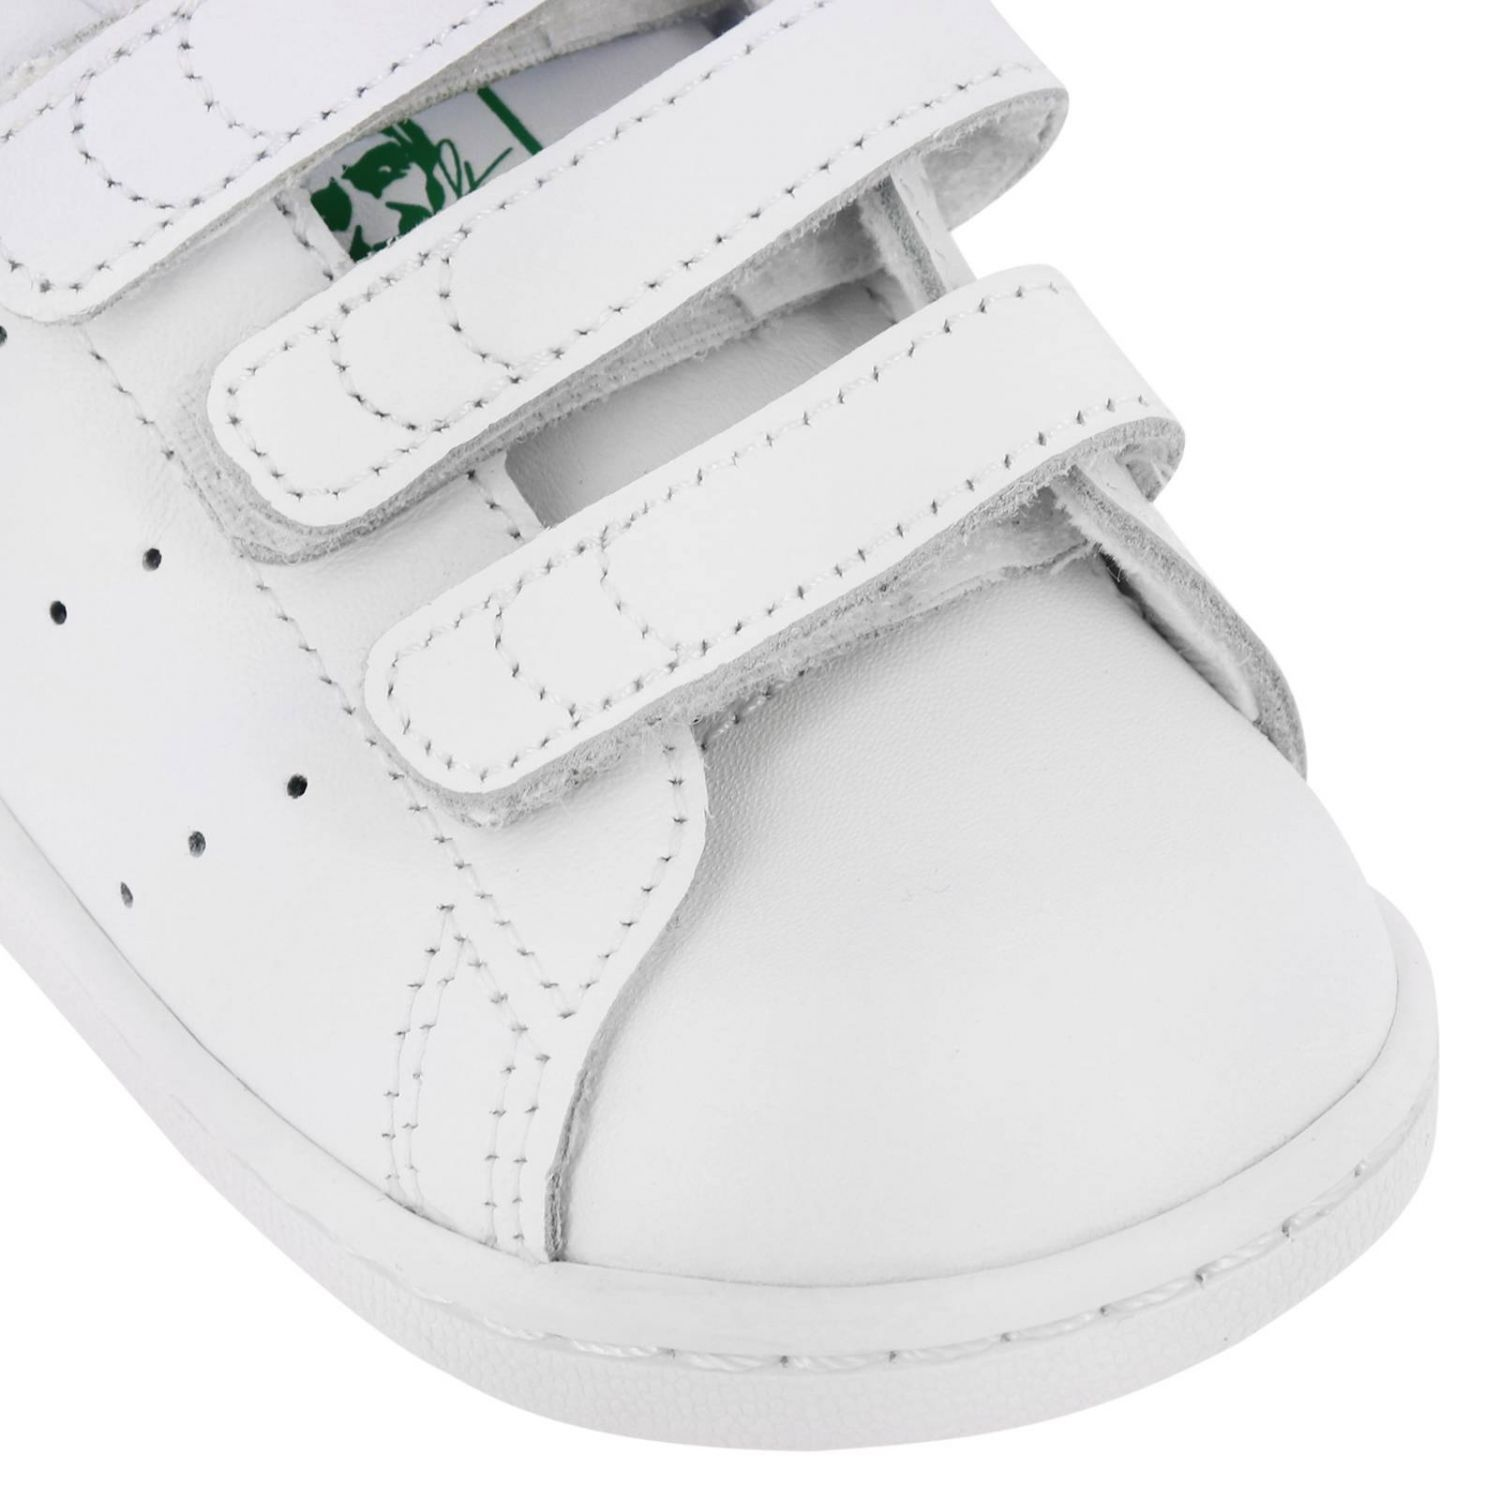 Stan Smith Adidas Originals Sneakers in smooth leather with colored heel white 3